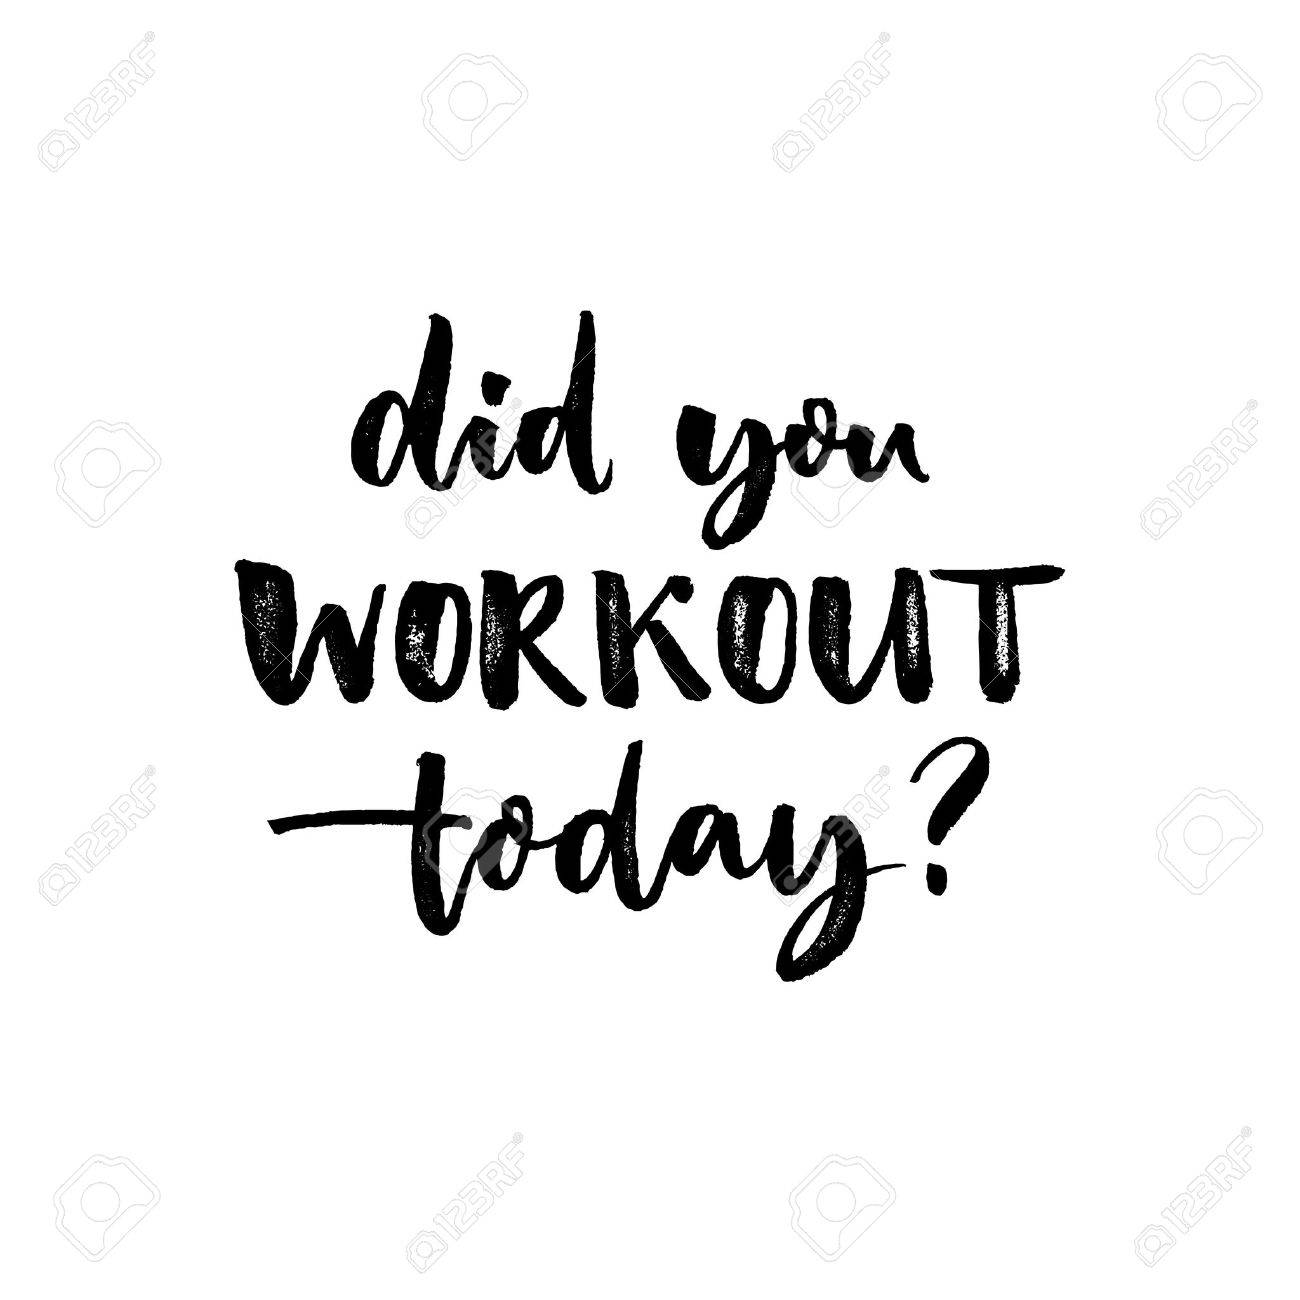 Did you workout today  Sport slogan, quote about fitness  Motivational